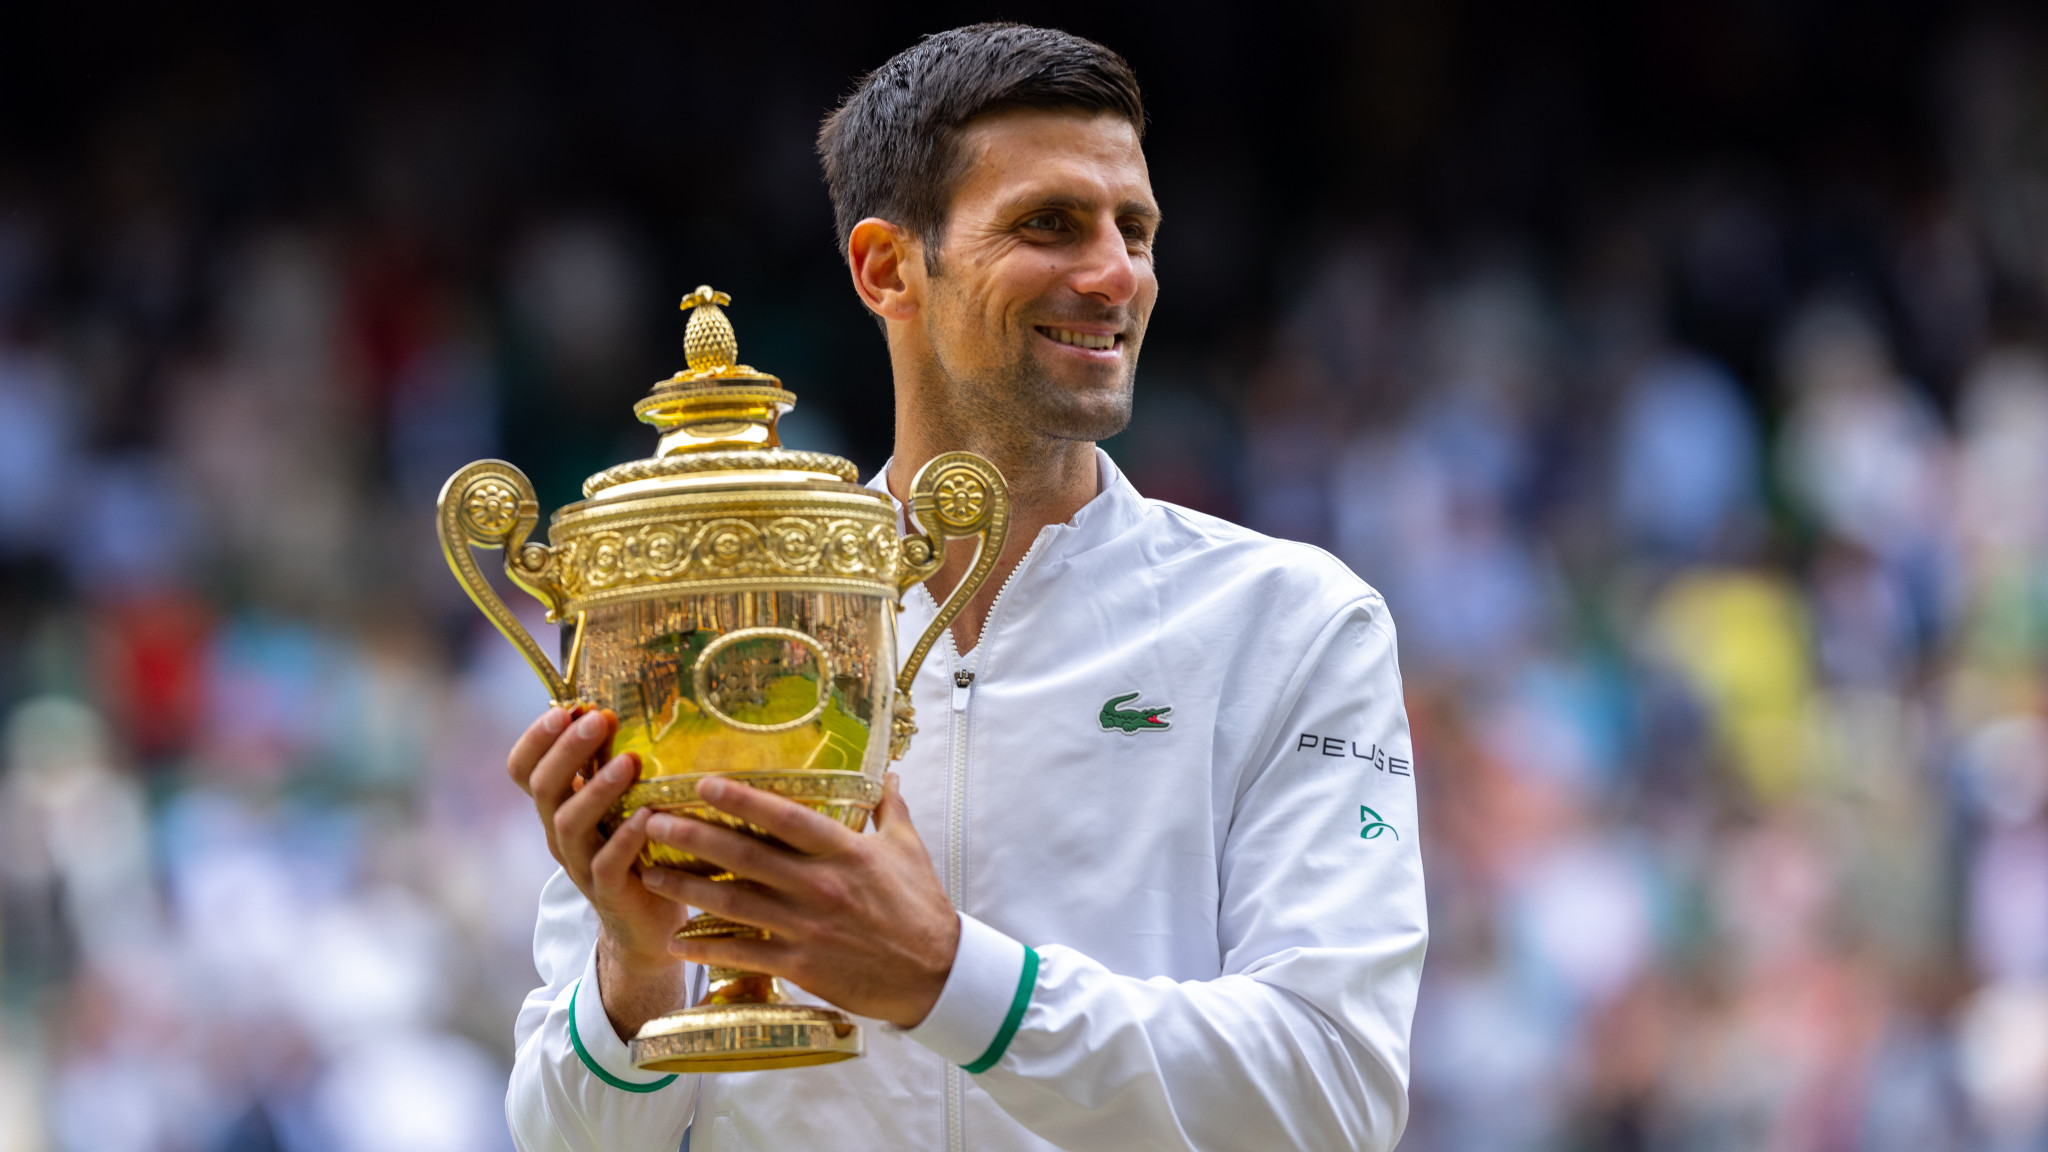 Djokovic continues Golden Slam quest after confirming will play at Tokyo 2020